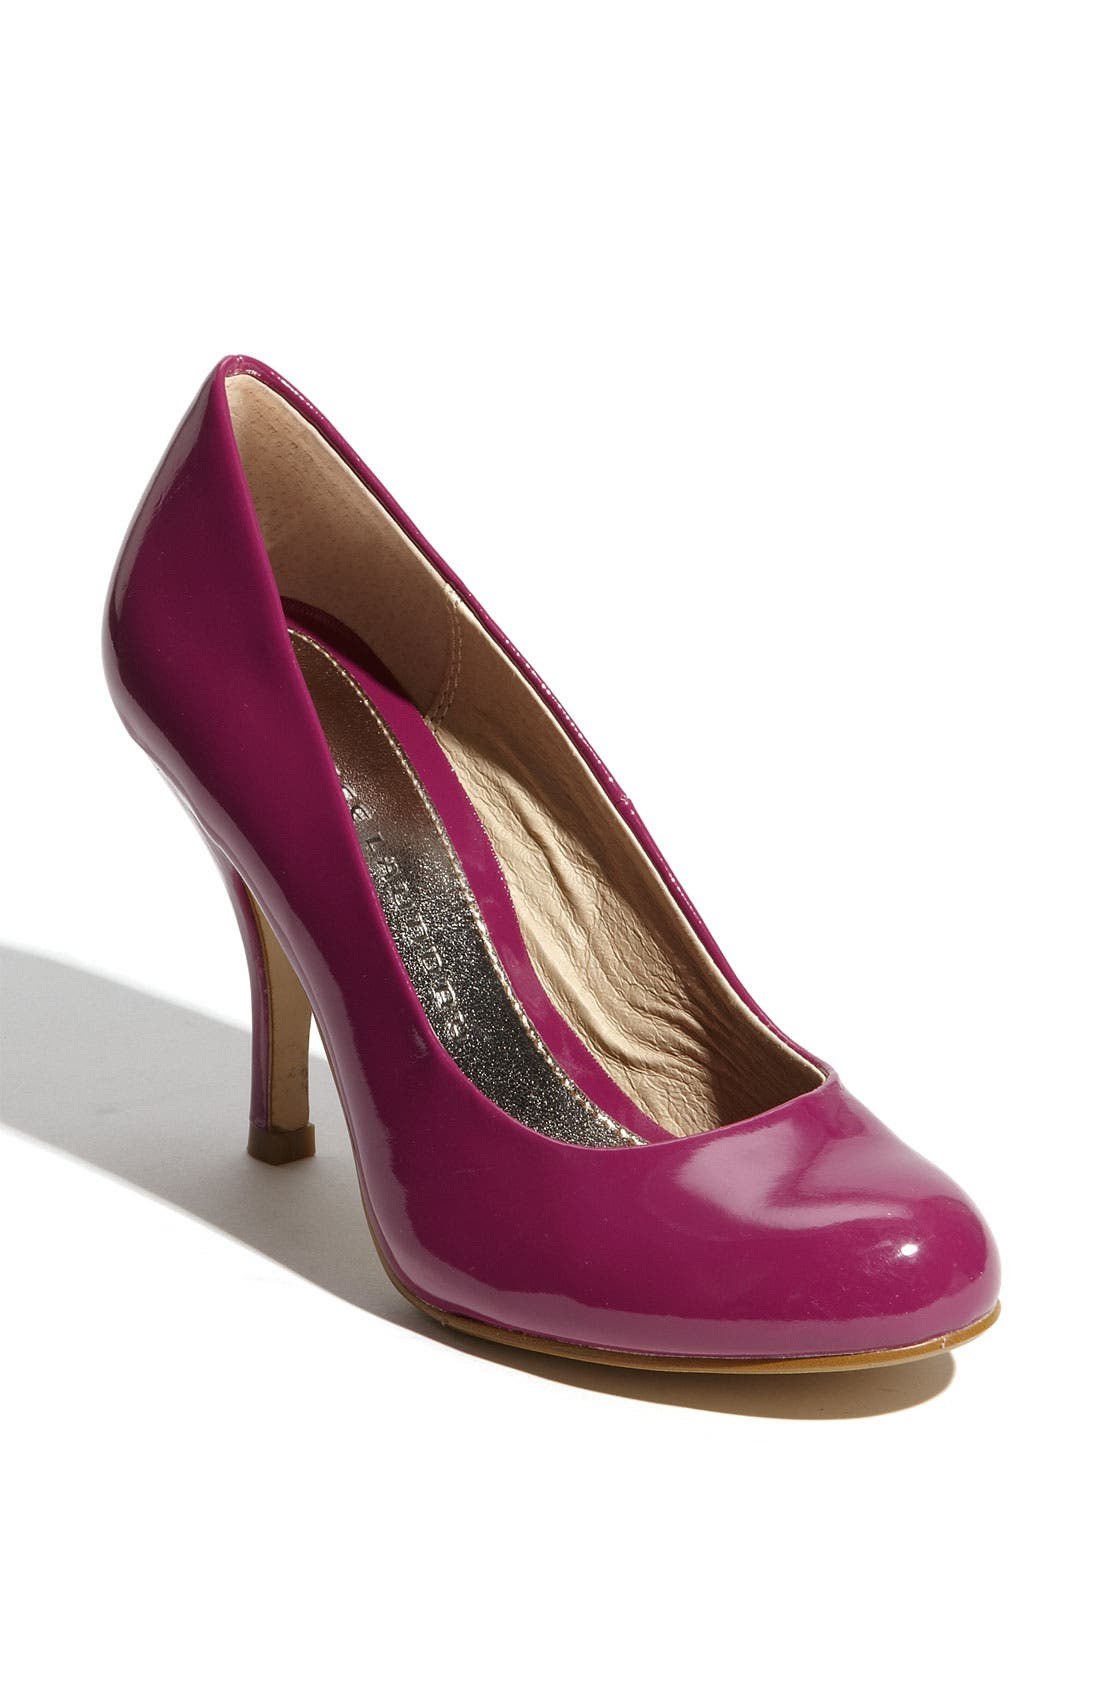 Alternate Image 1 Selected - Chinese Laundry 'New Love' Pump